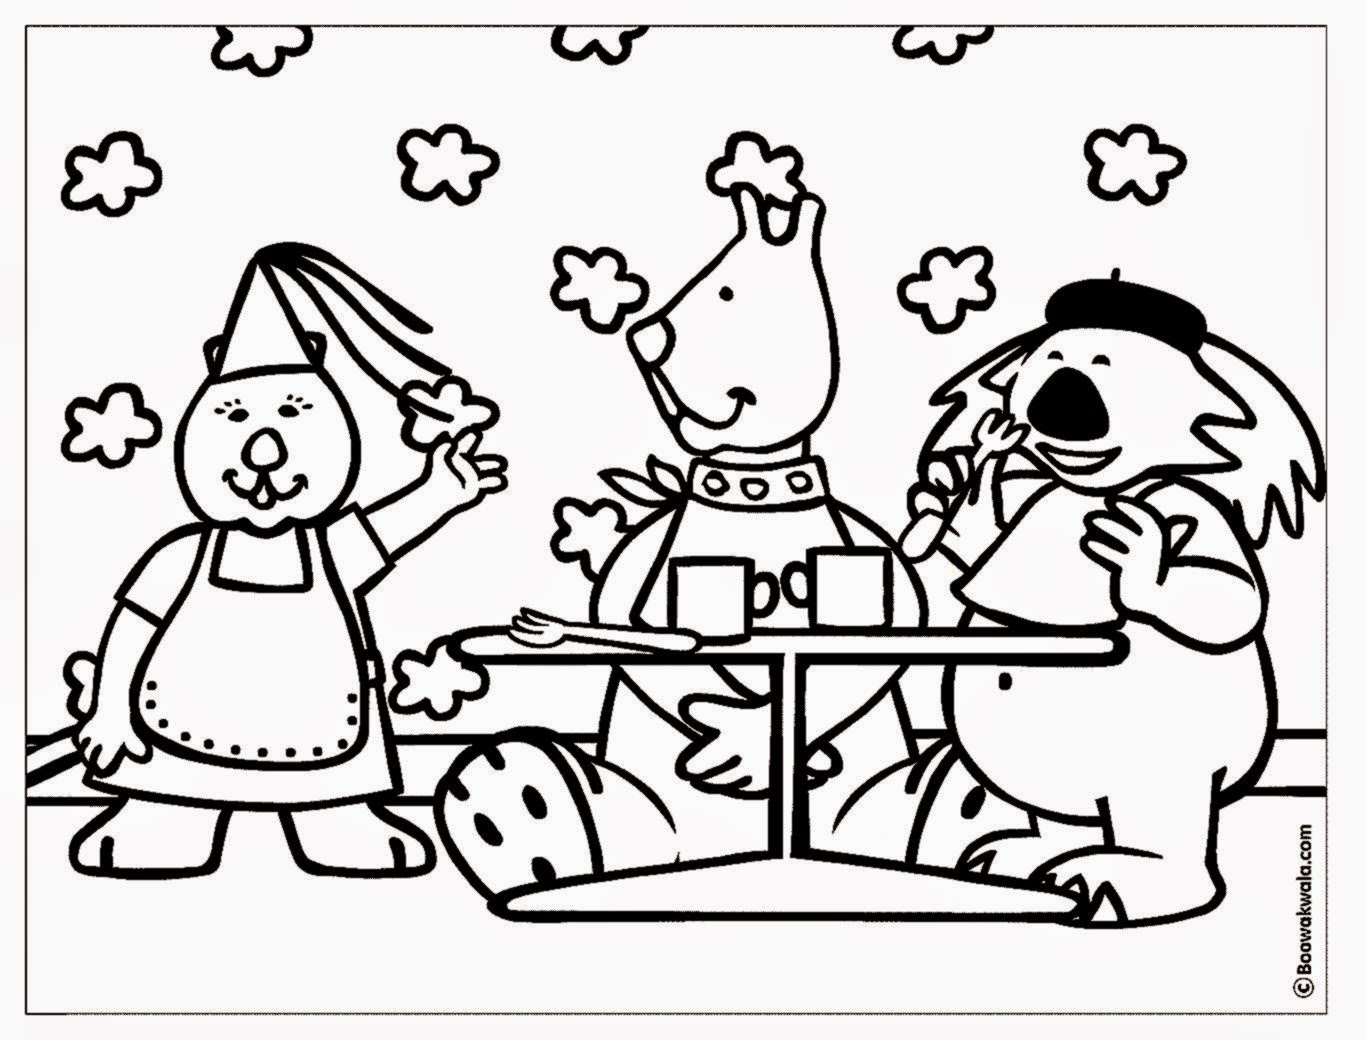 At Restaurant Coloring Pages